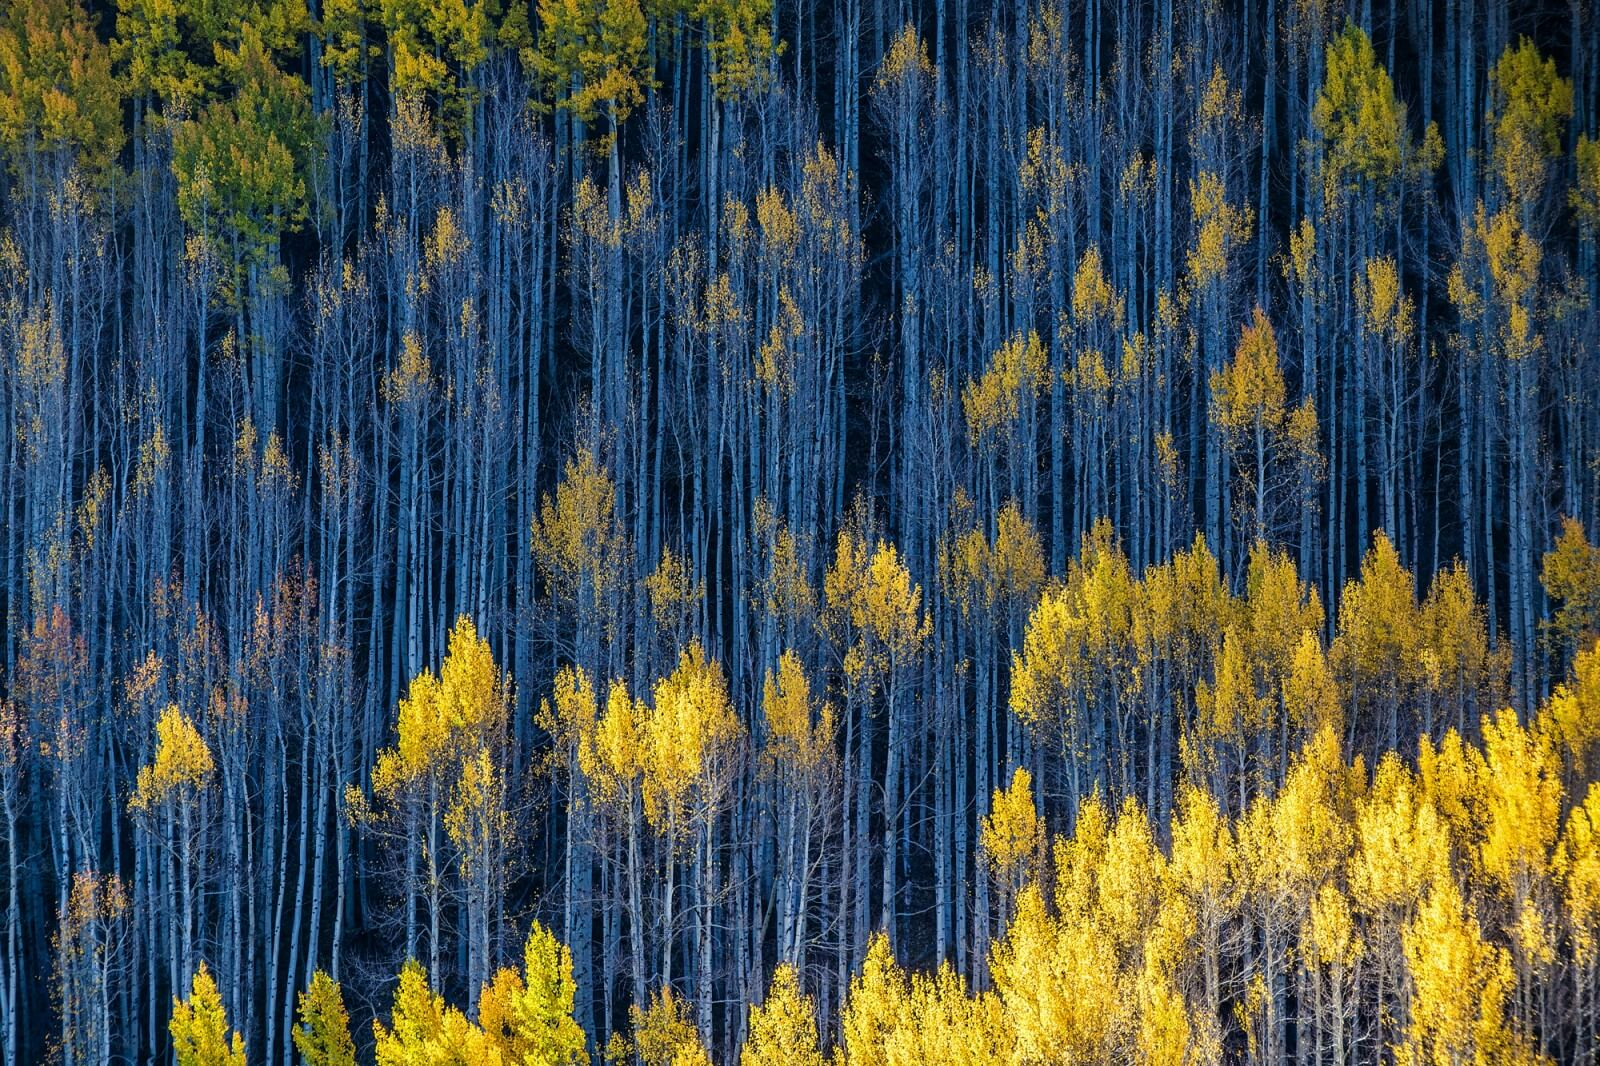 Abstractions from Aspens